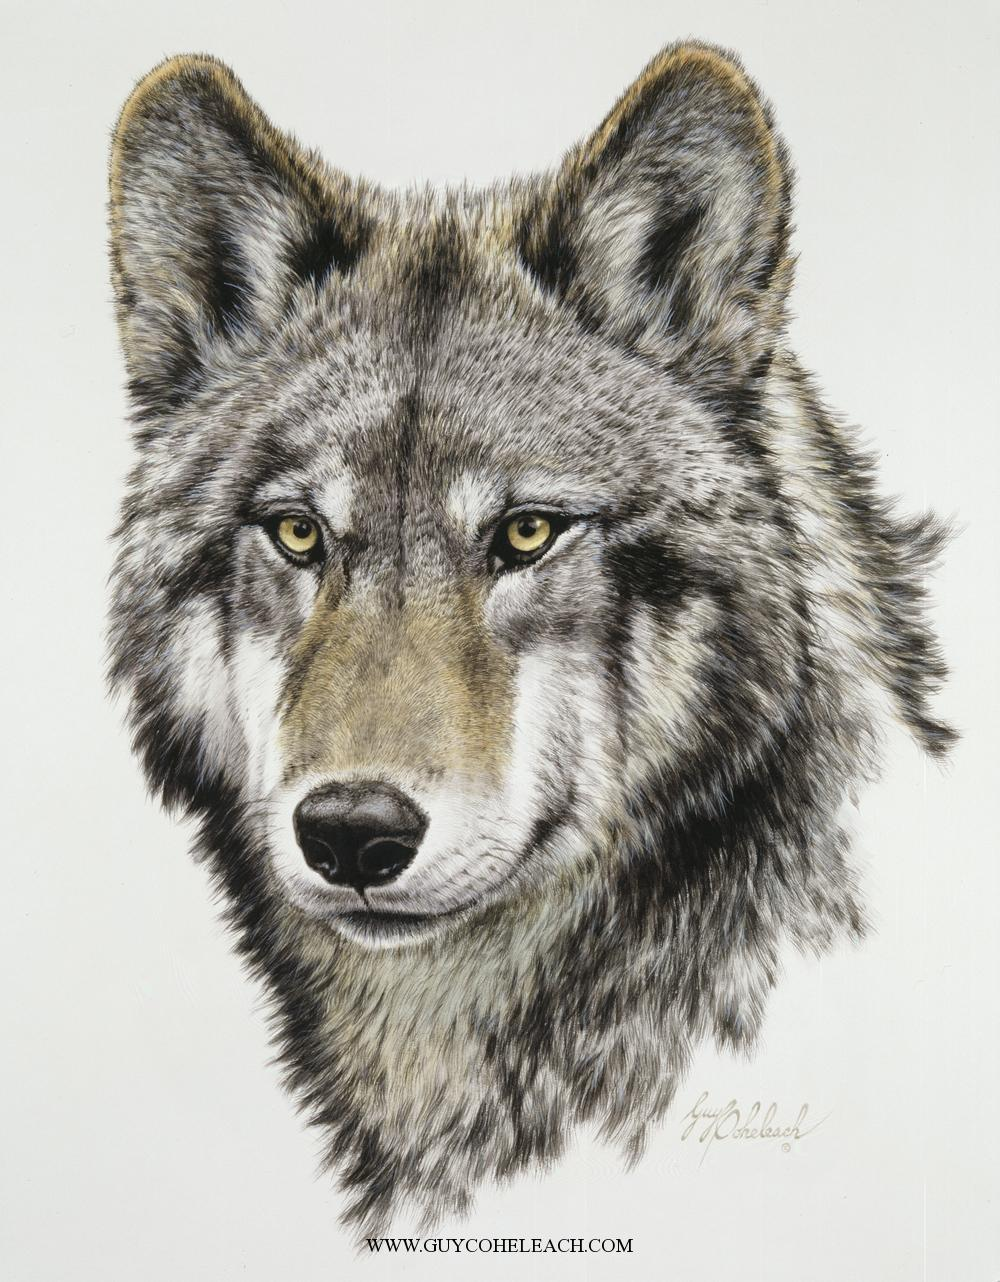 """Wolf Head, Timber""  -  22"" x 17"" ""Wolf Head, Timber"" - Canine  Wild Canine Paintings  Wolf and Fox Artwork"